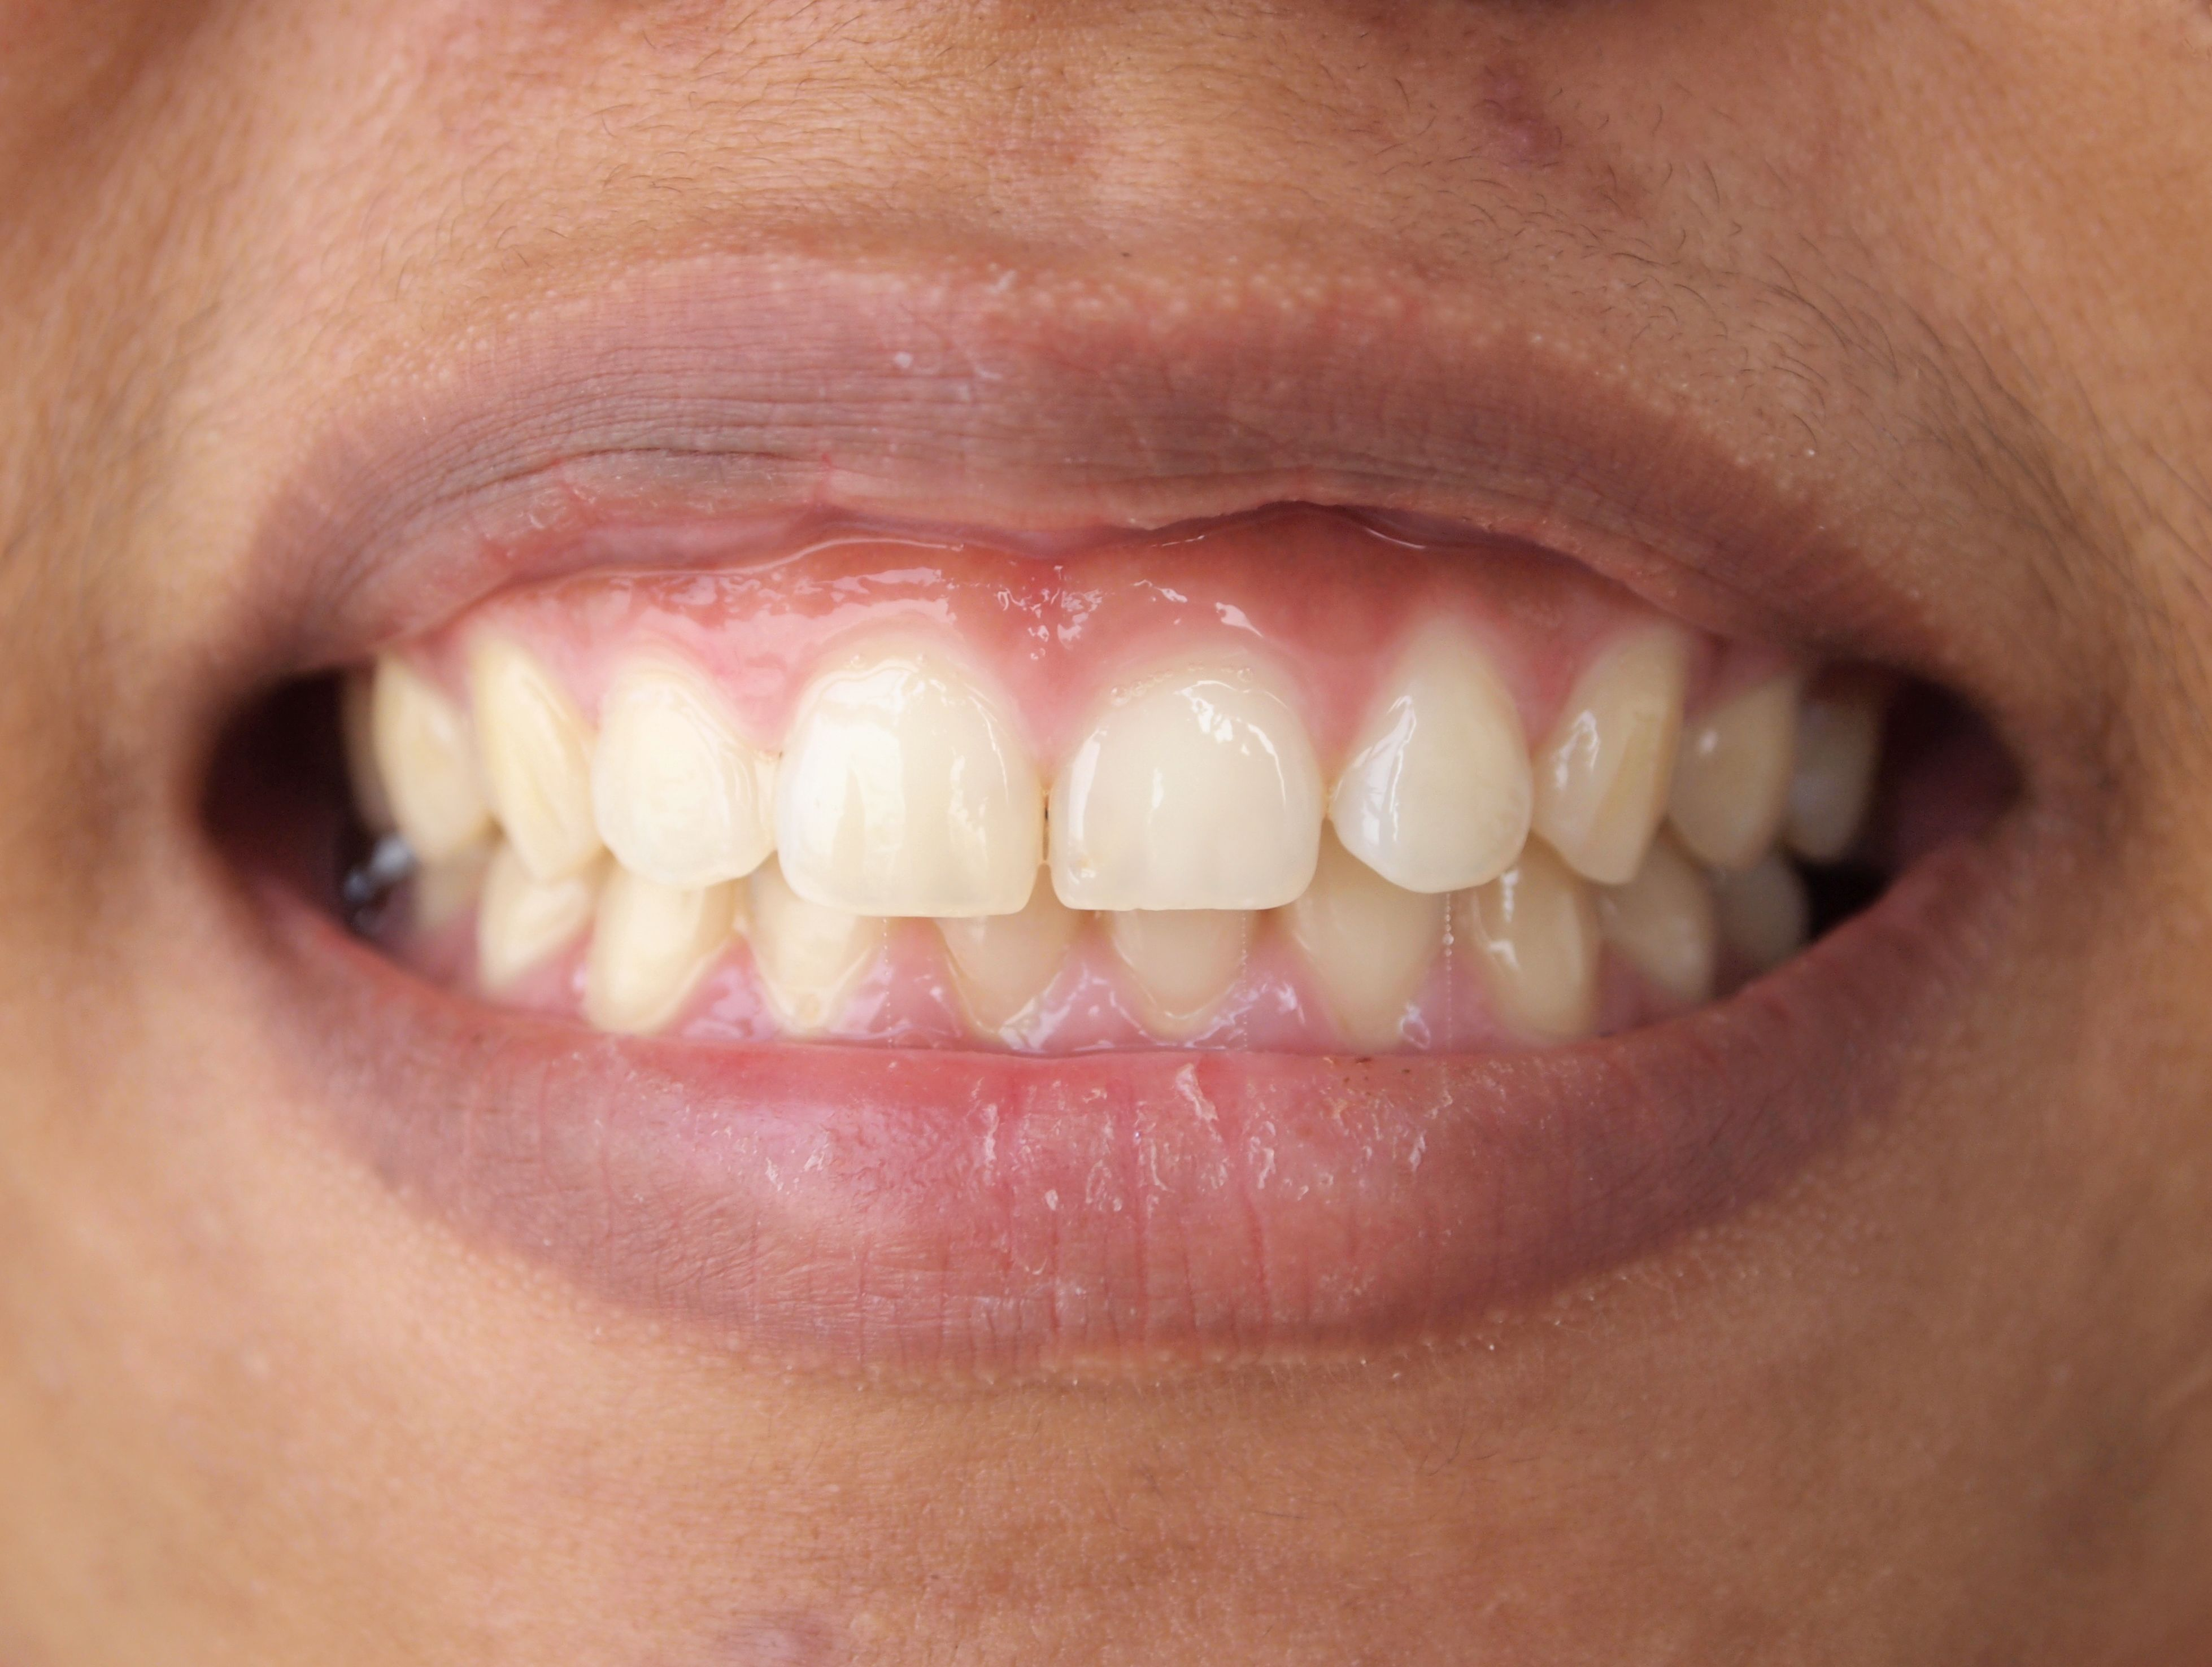 Up close photo of person with gummy smile